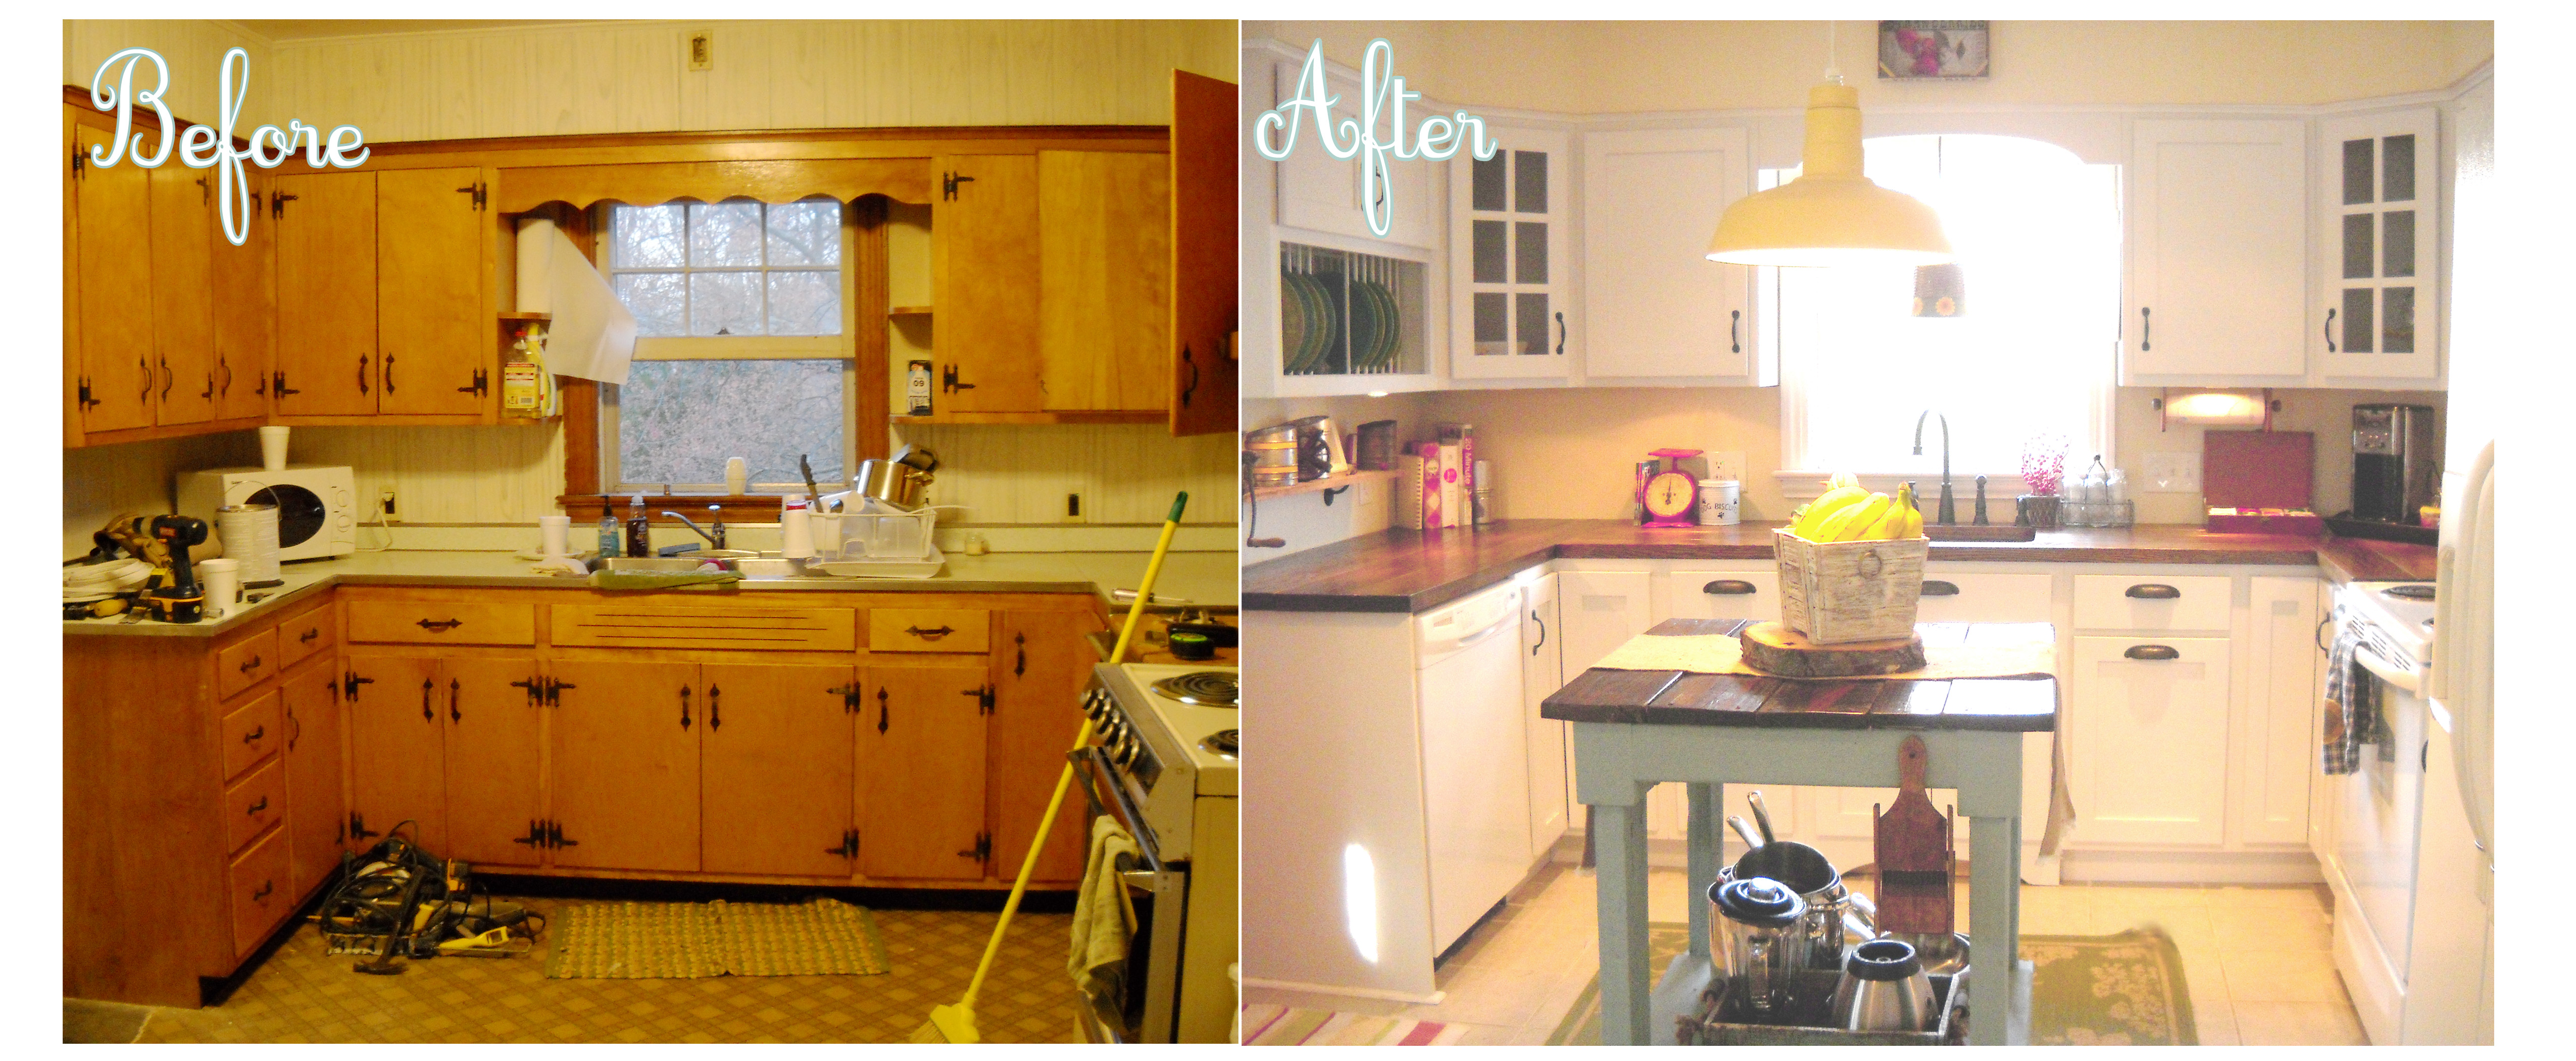 Kitchen Renovations Before And After With White Cabinets And Wooden  Countertop And Sink Combined With Table